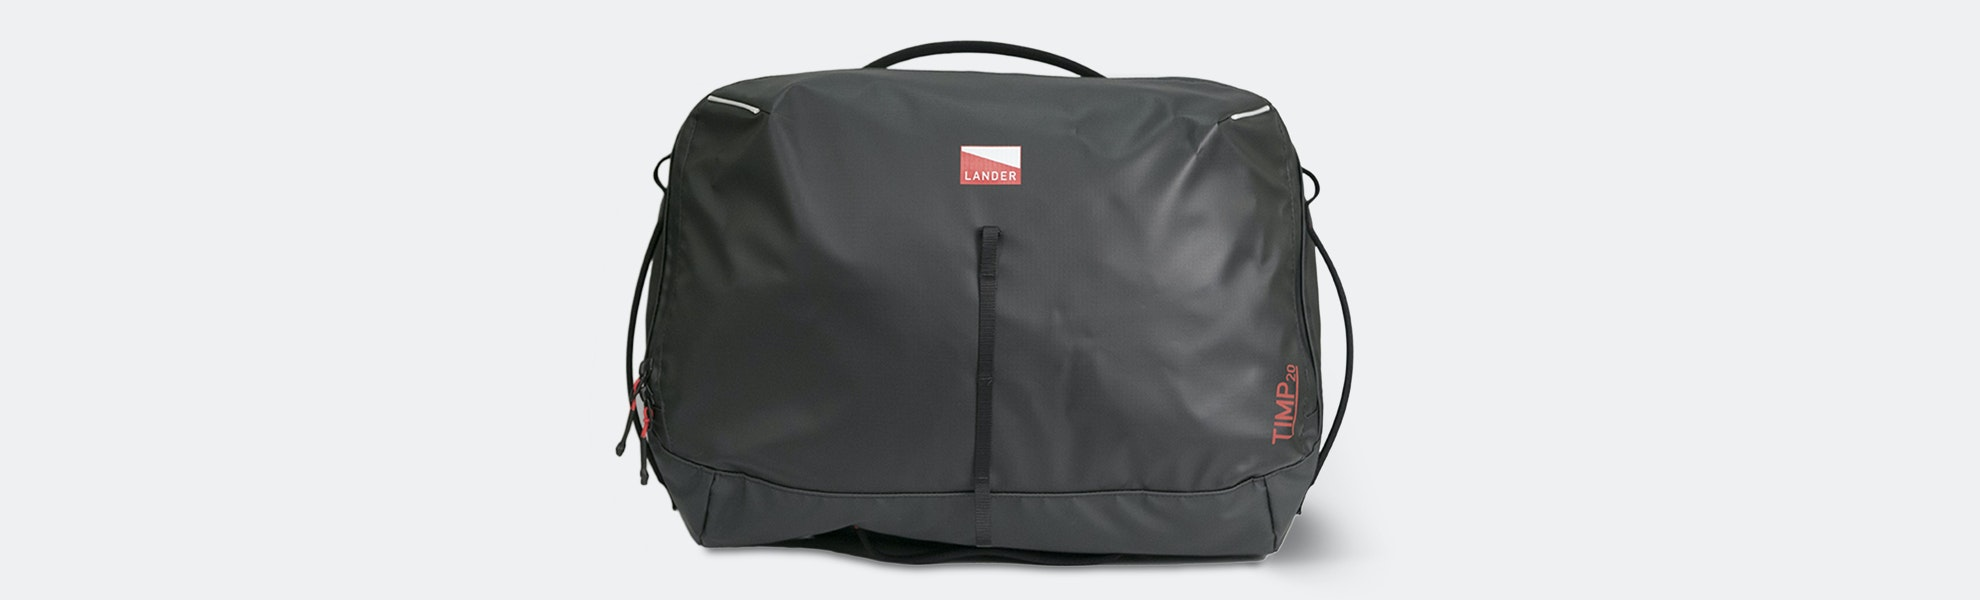 Lander Timp Messenger Bag